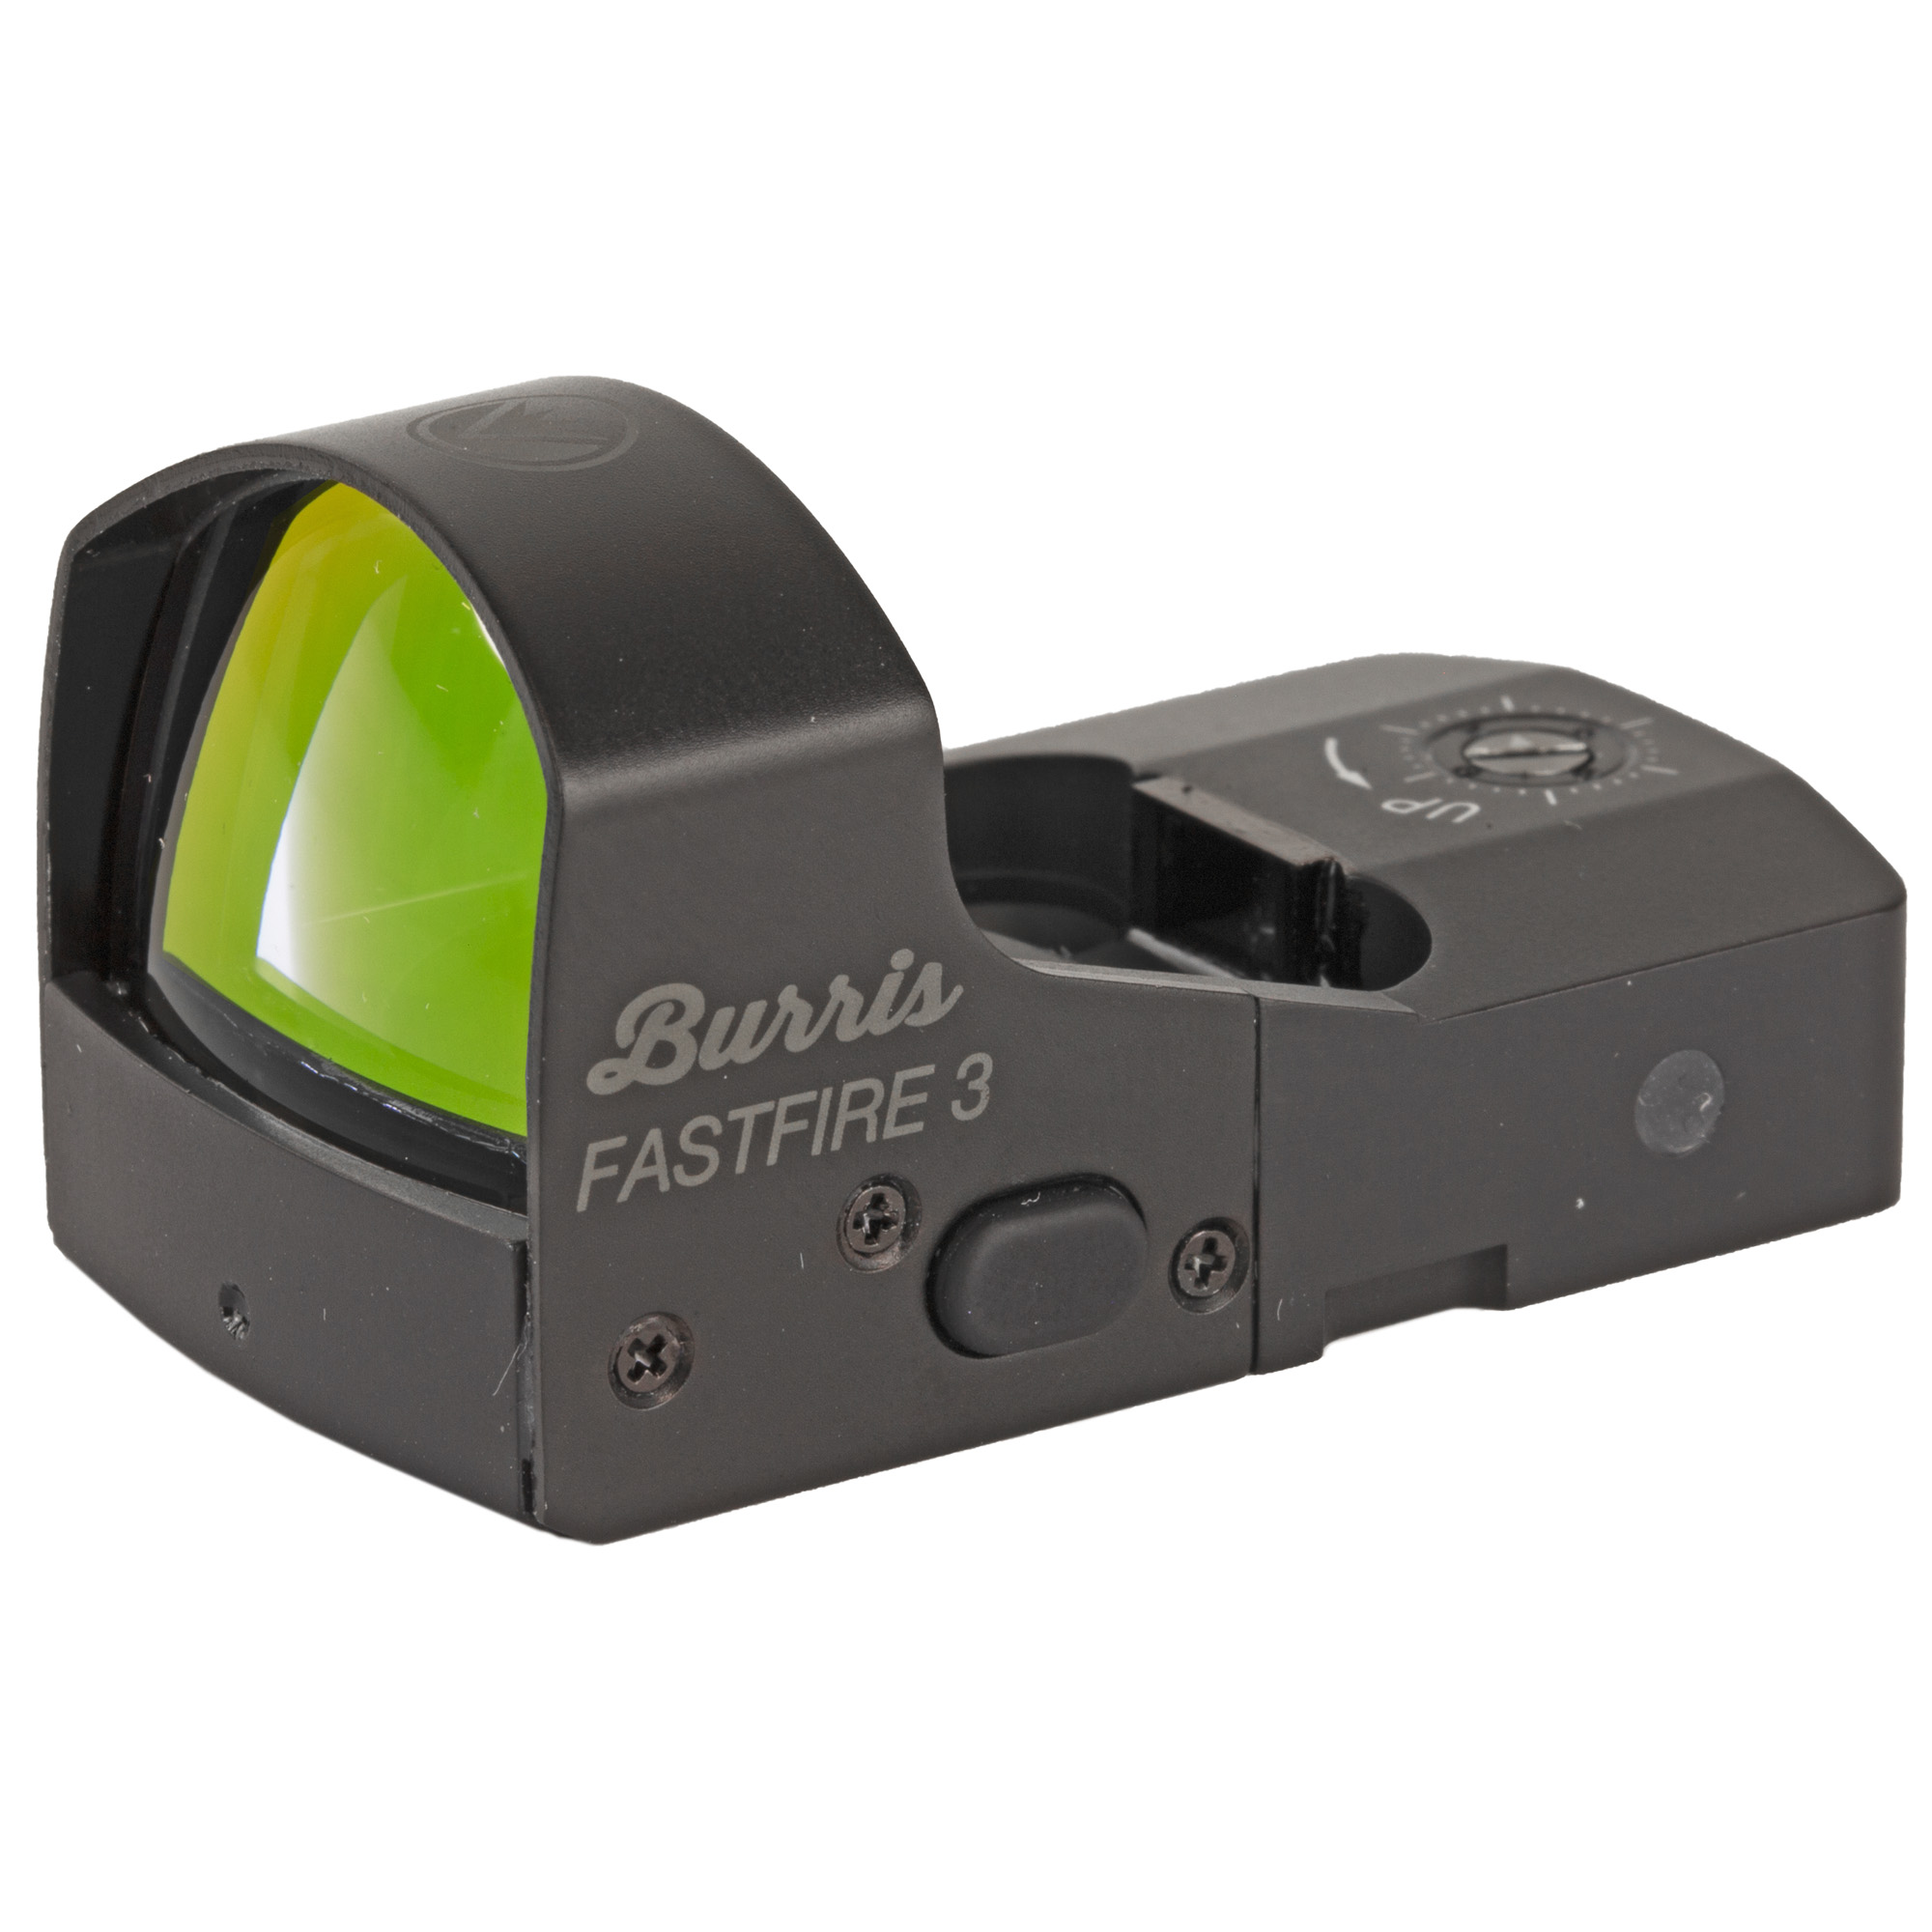 "The FastFire 3 is the bestselling red dot sight from Burris. It is available with an 8 MOA dot. Light and tough"" the FastFire 3 series puts an unmistakable"" bright red dot on your target to give you an immediate speed and accuracy advantage. Can be used as a primary sight or paired on top of an existing sight."